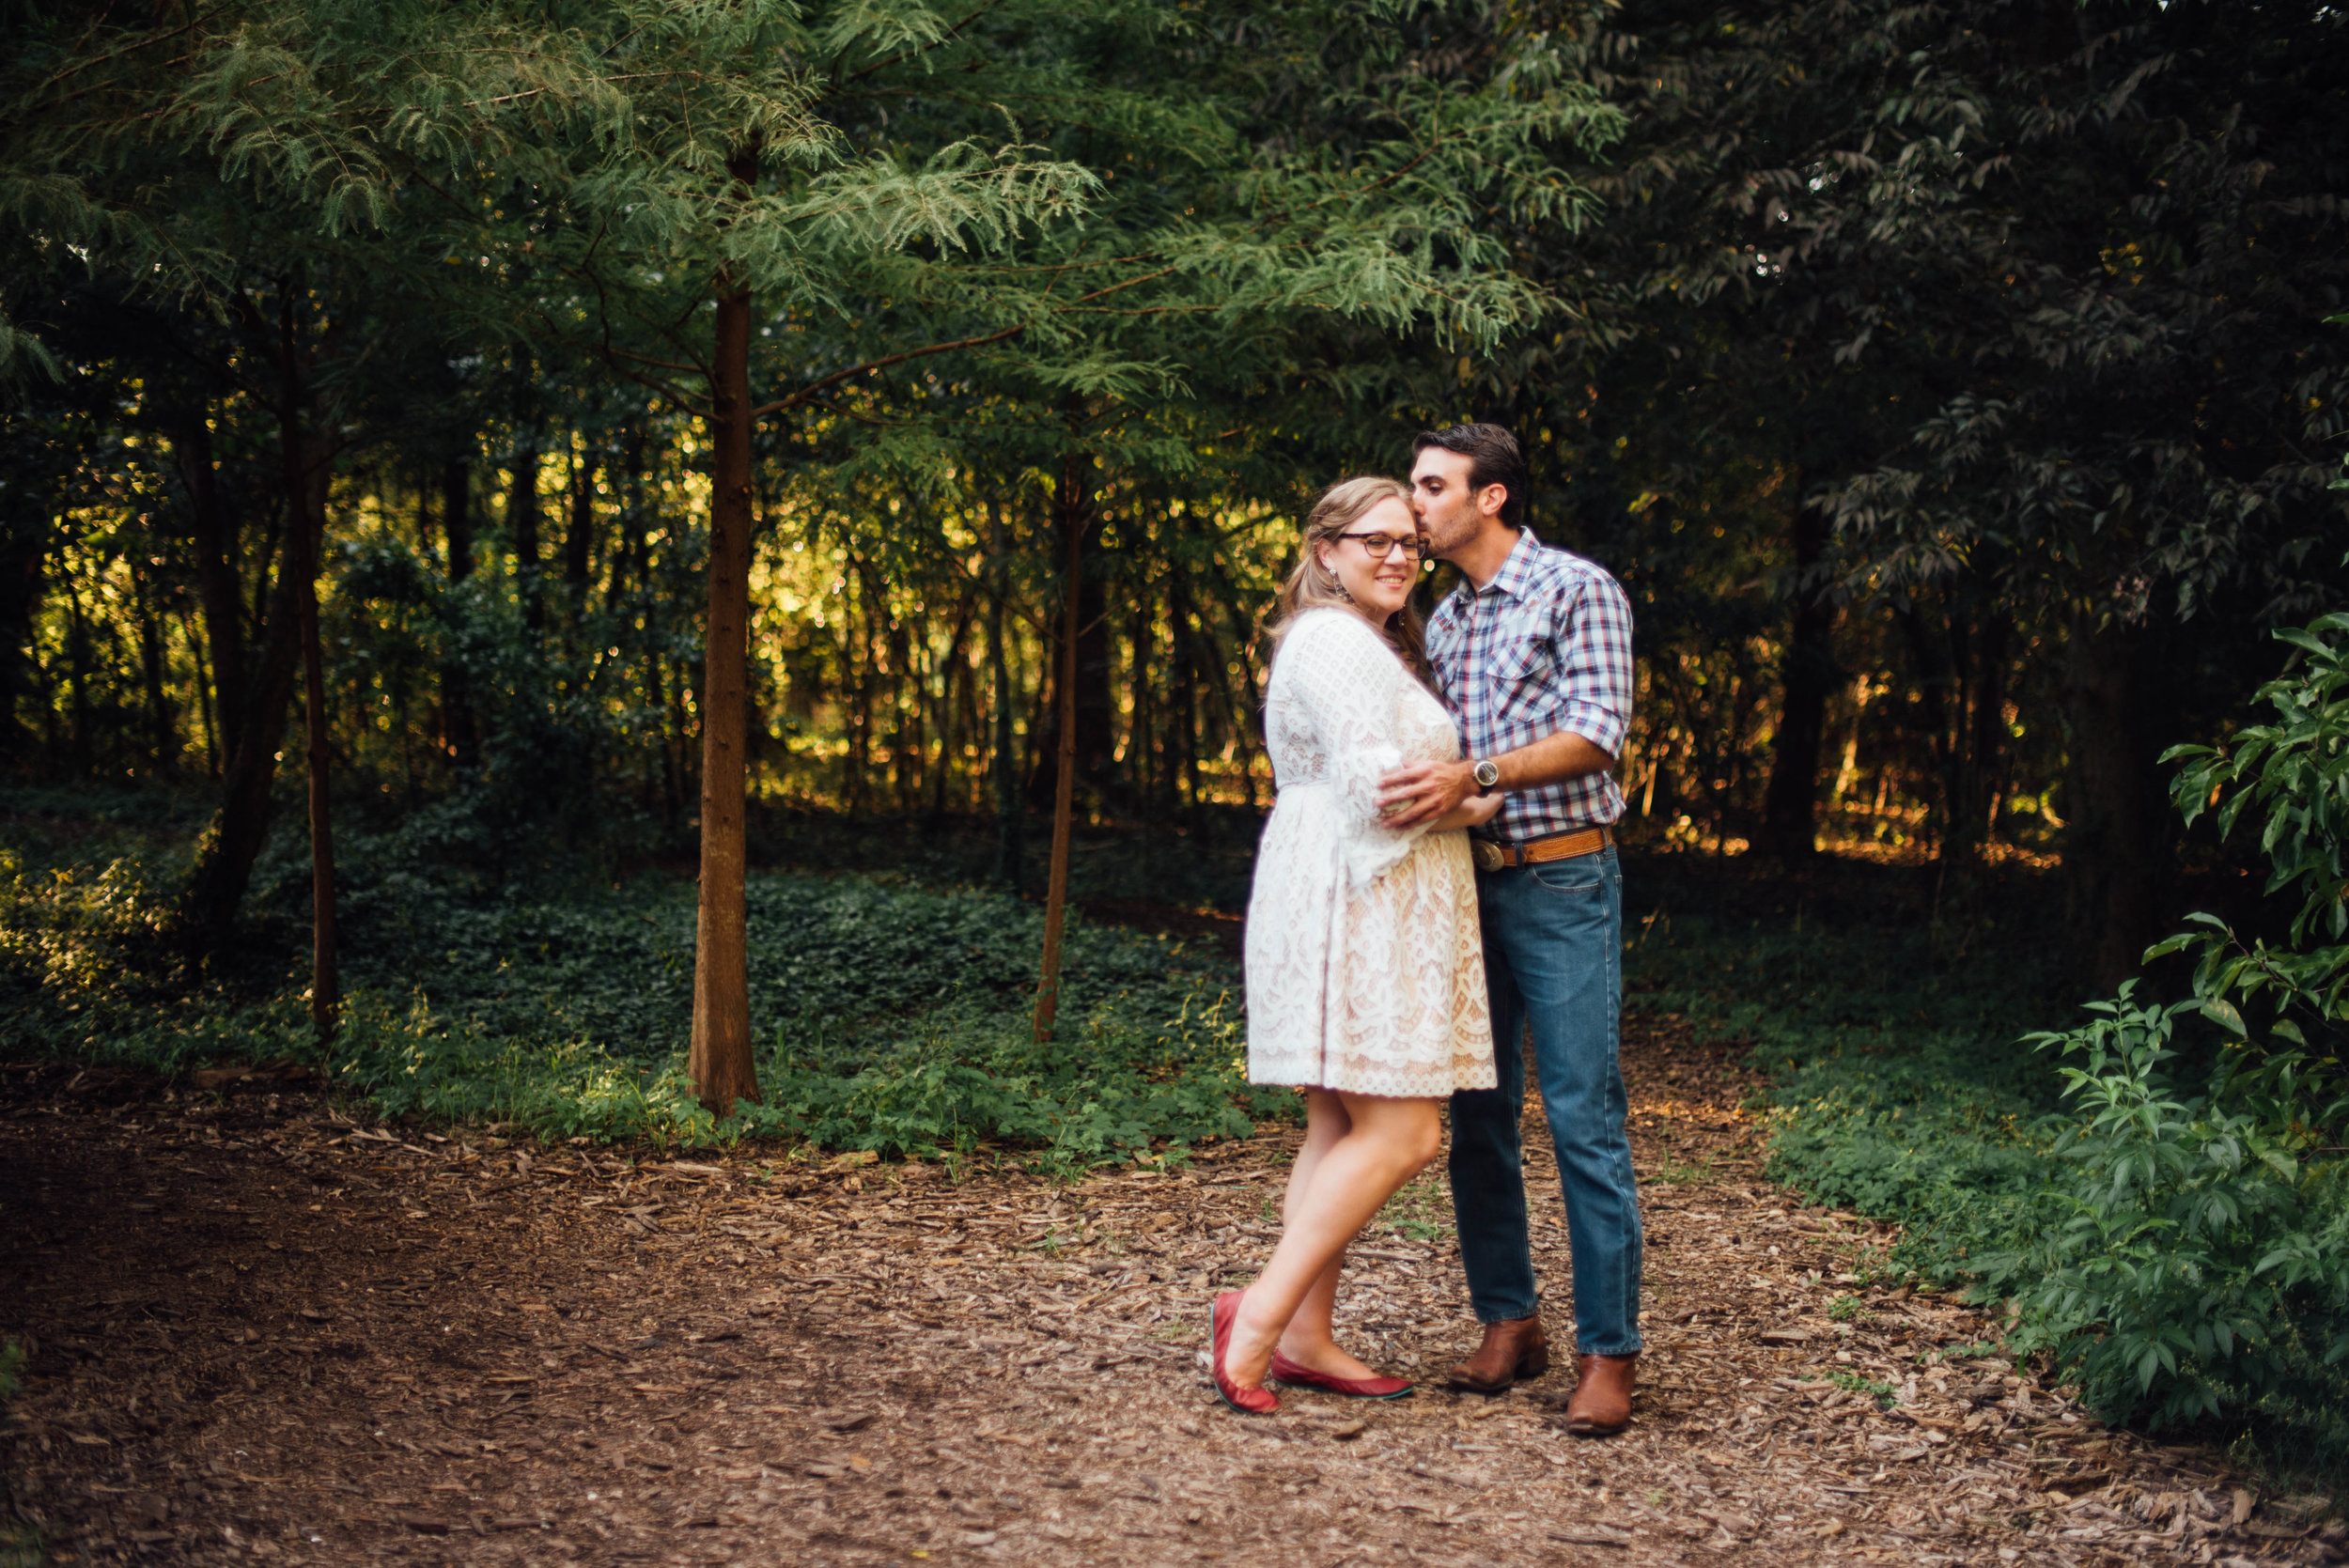 Jordan + Kent_French-Quarter-New-Orleans-City-Park-Engagement-Photos_Gabby Chapin_Print_0099.jpg